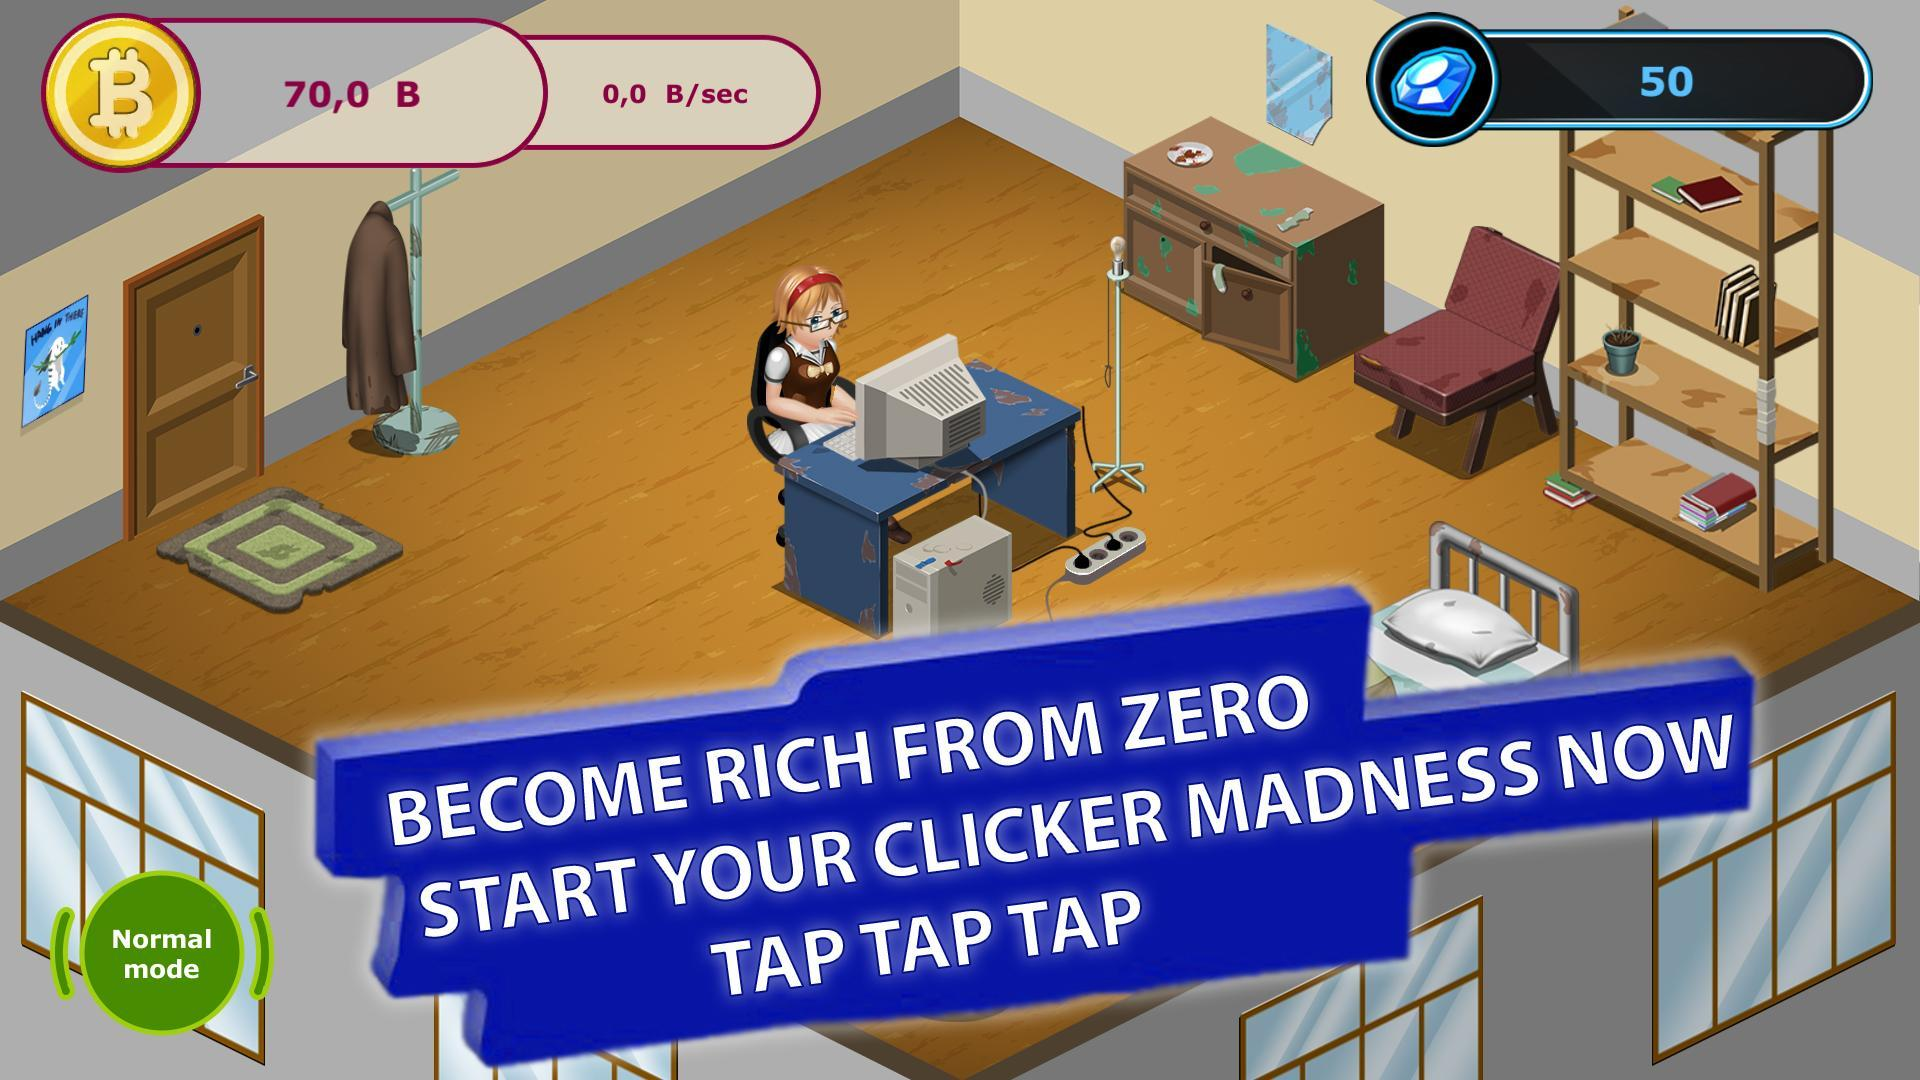 Bitcoin Idle - Tap Tap Clicker for Android - APK Download